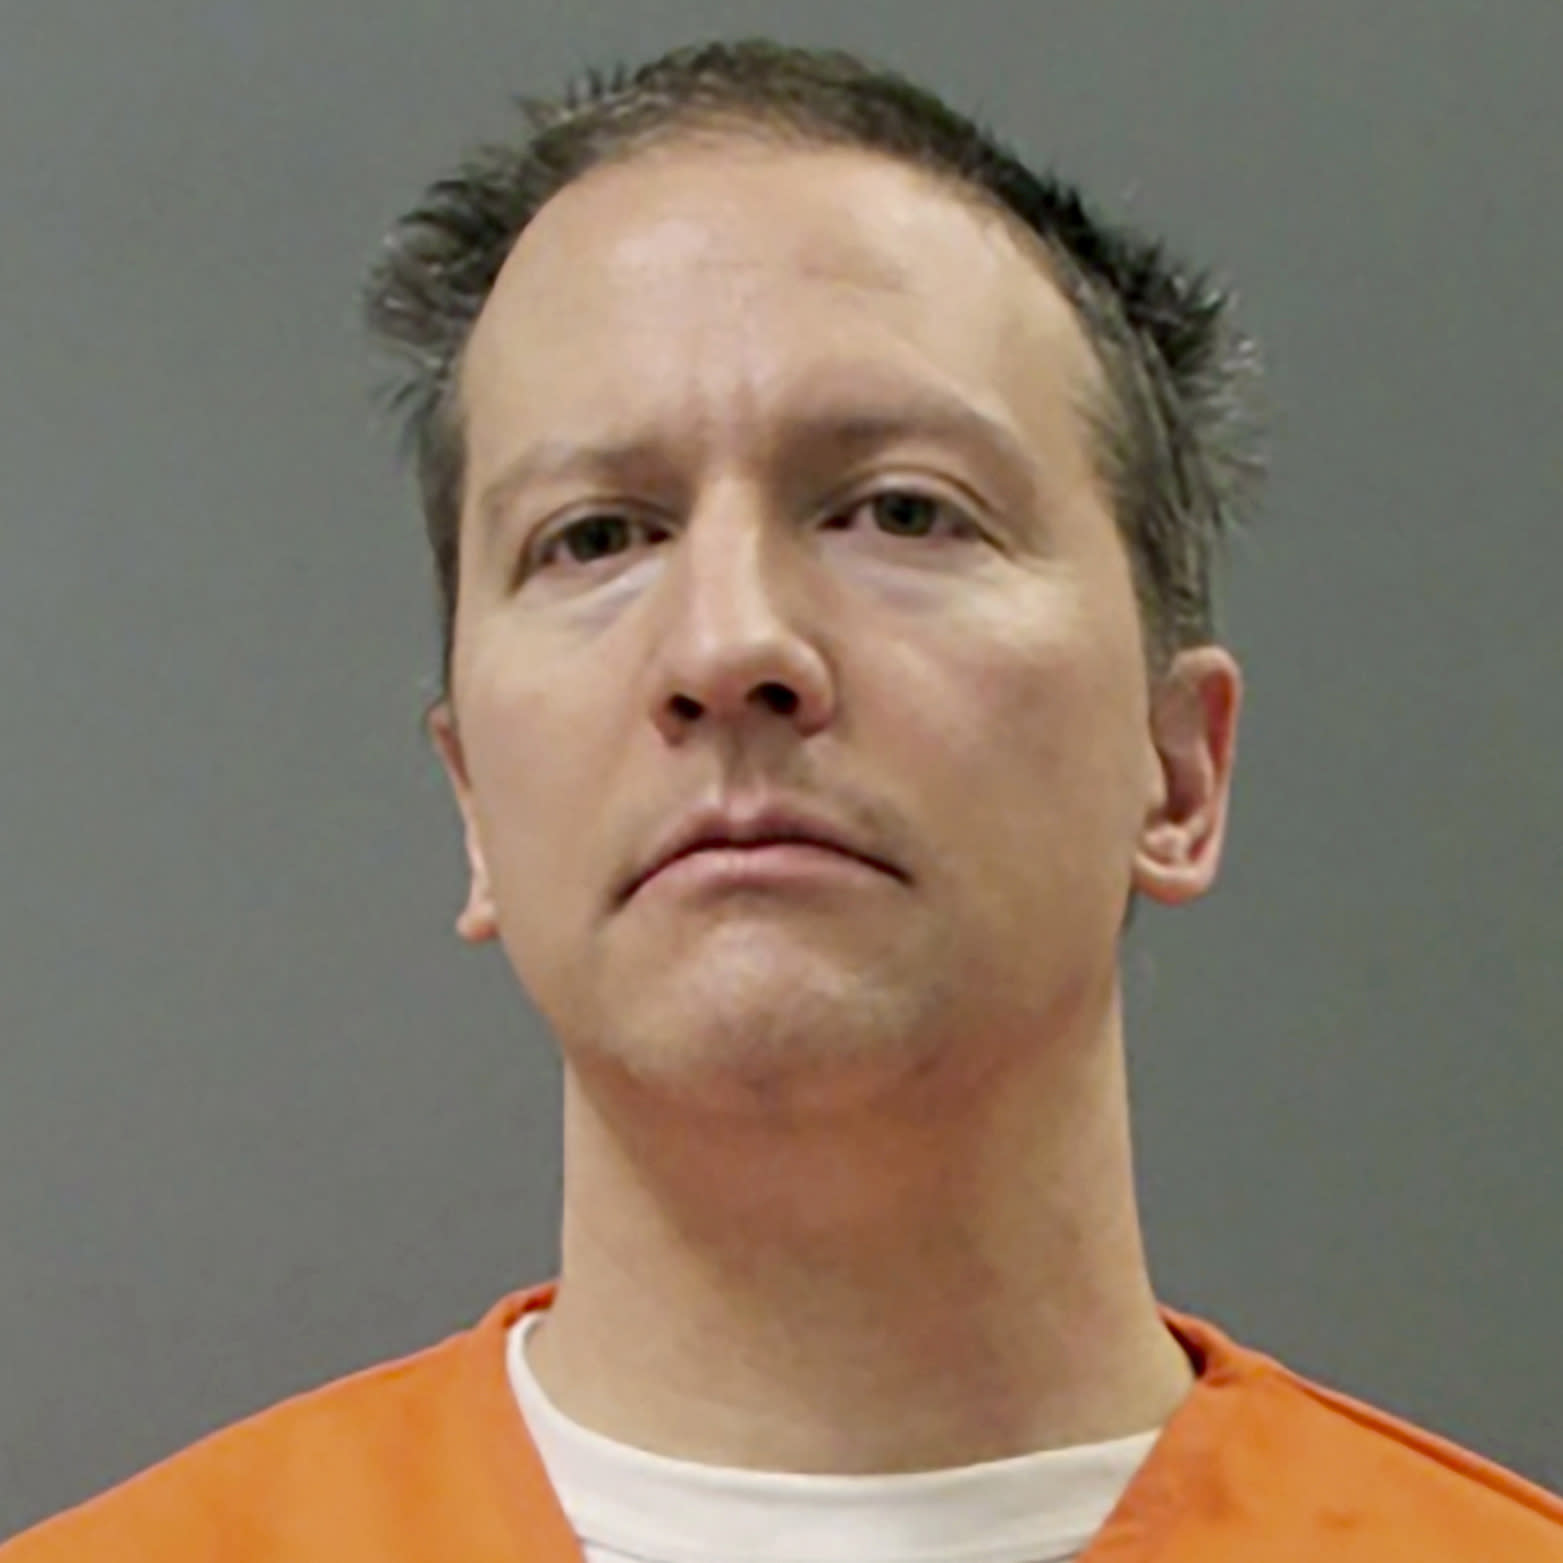 What to expect at Derek Chauvin's sentencing